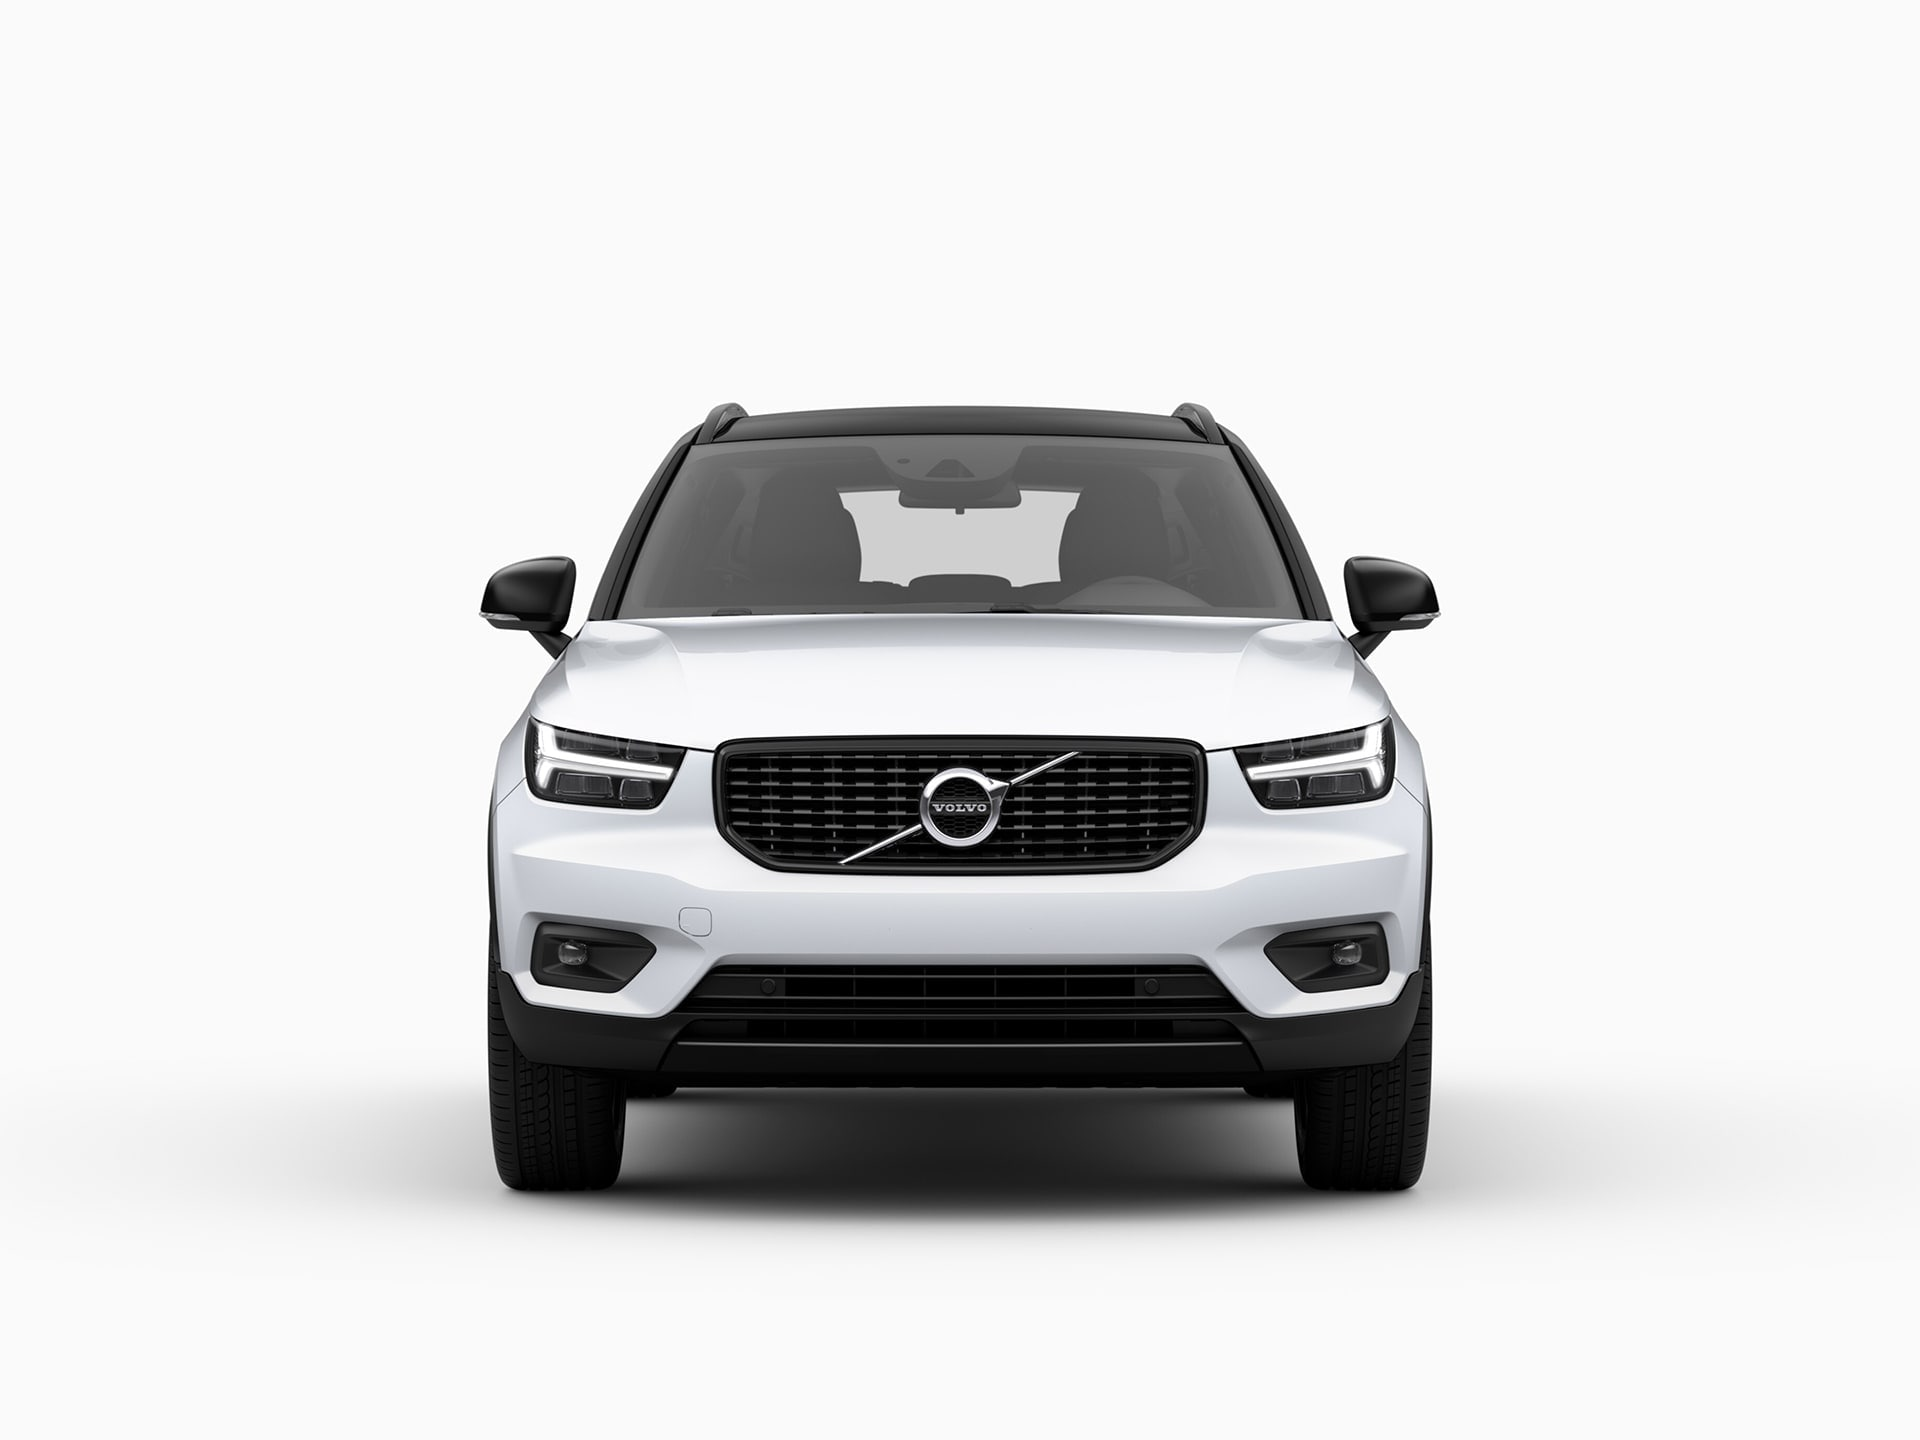 The front of a Volvo XC40 SUV.